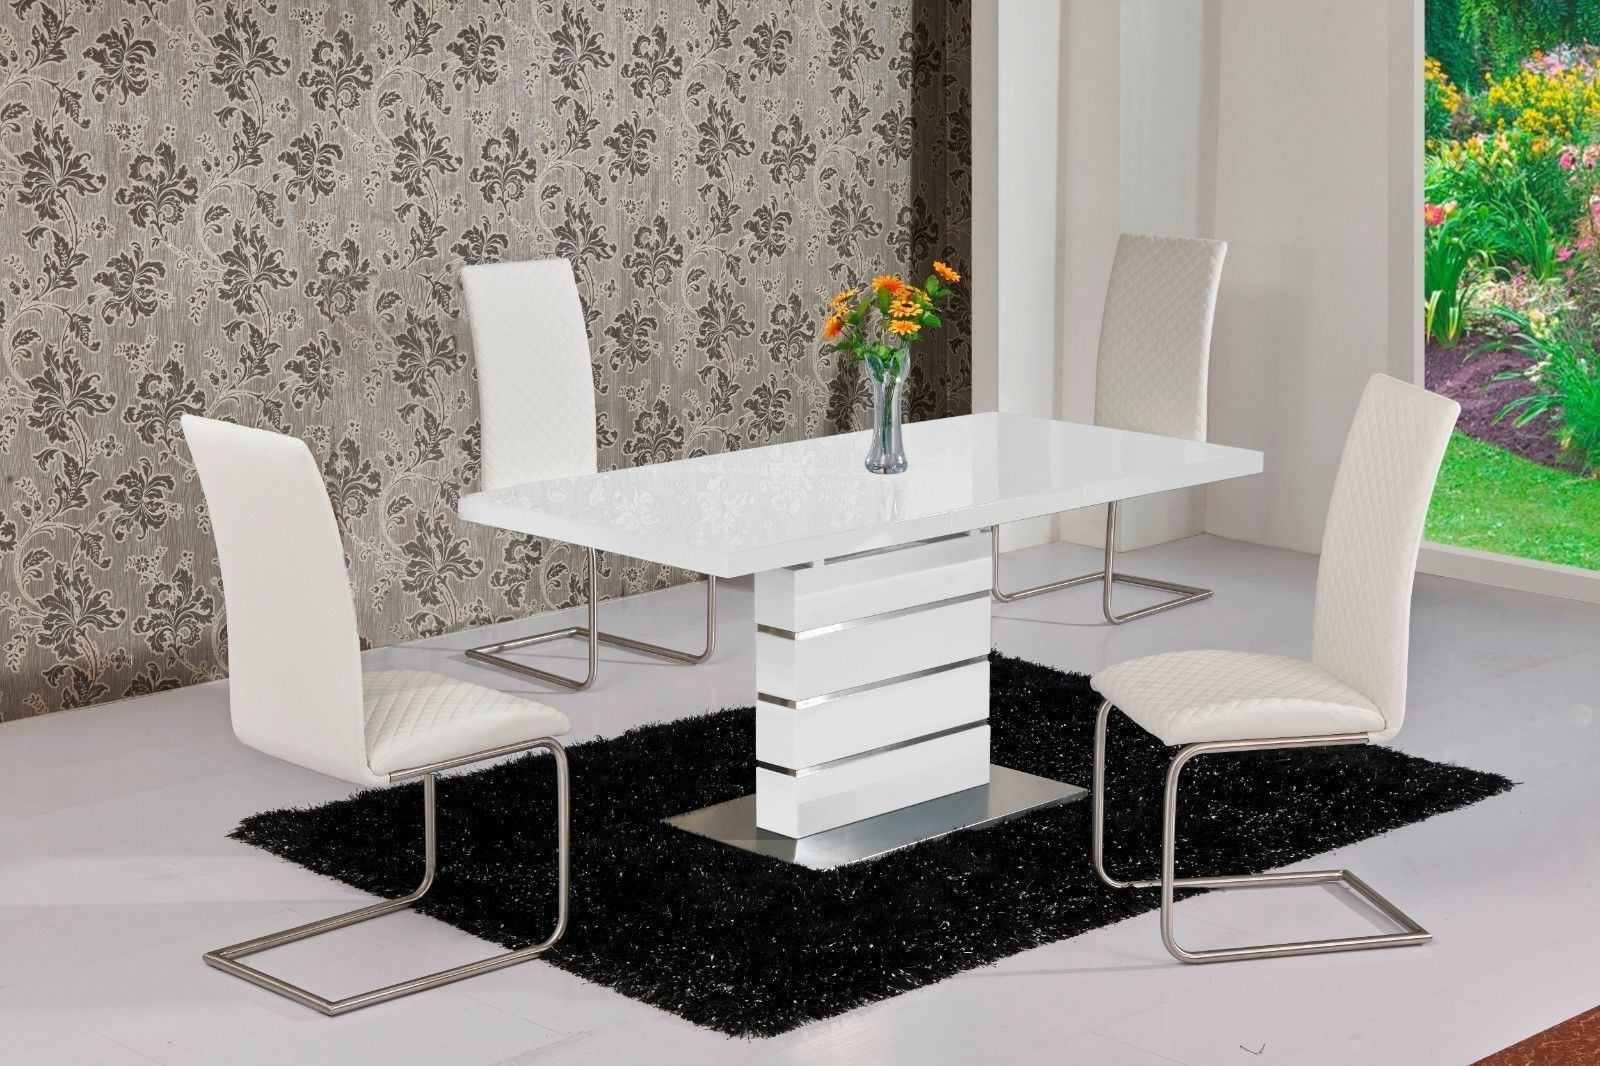 Well Known Mace High Gloss Extending 120 160 Dining Table & Chair Set – White With Regard To Extending Dining Tables 6 Chairs (View 3 of 25)